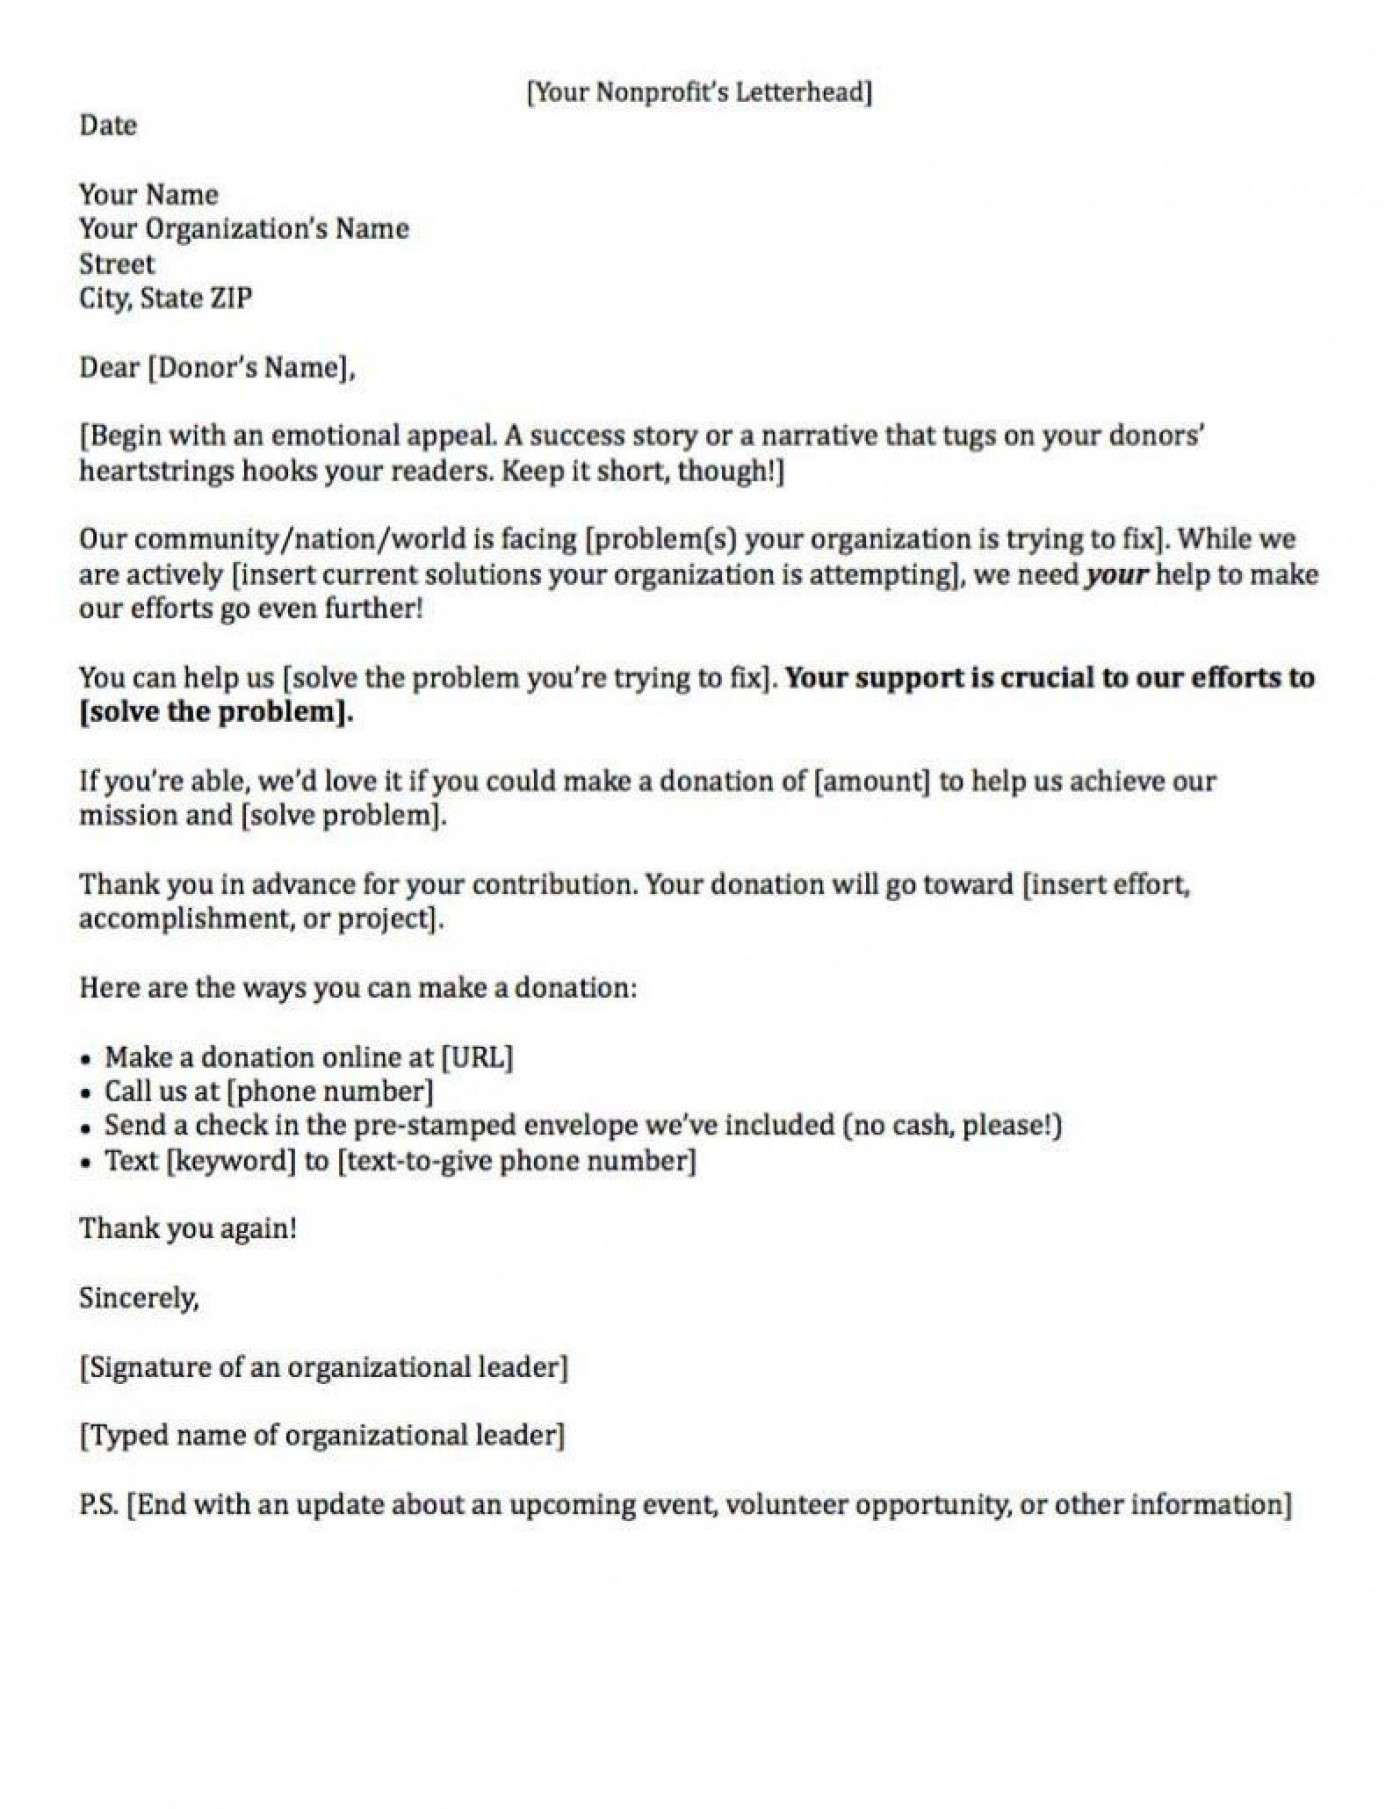 000 Sensational Fund Raising Letter Template Example  Fundraising For Mission Trip School Sample Of A Nonprofit Organization1400